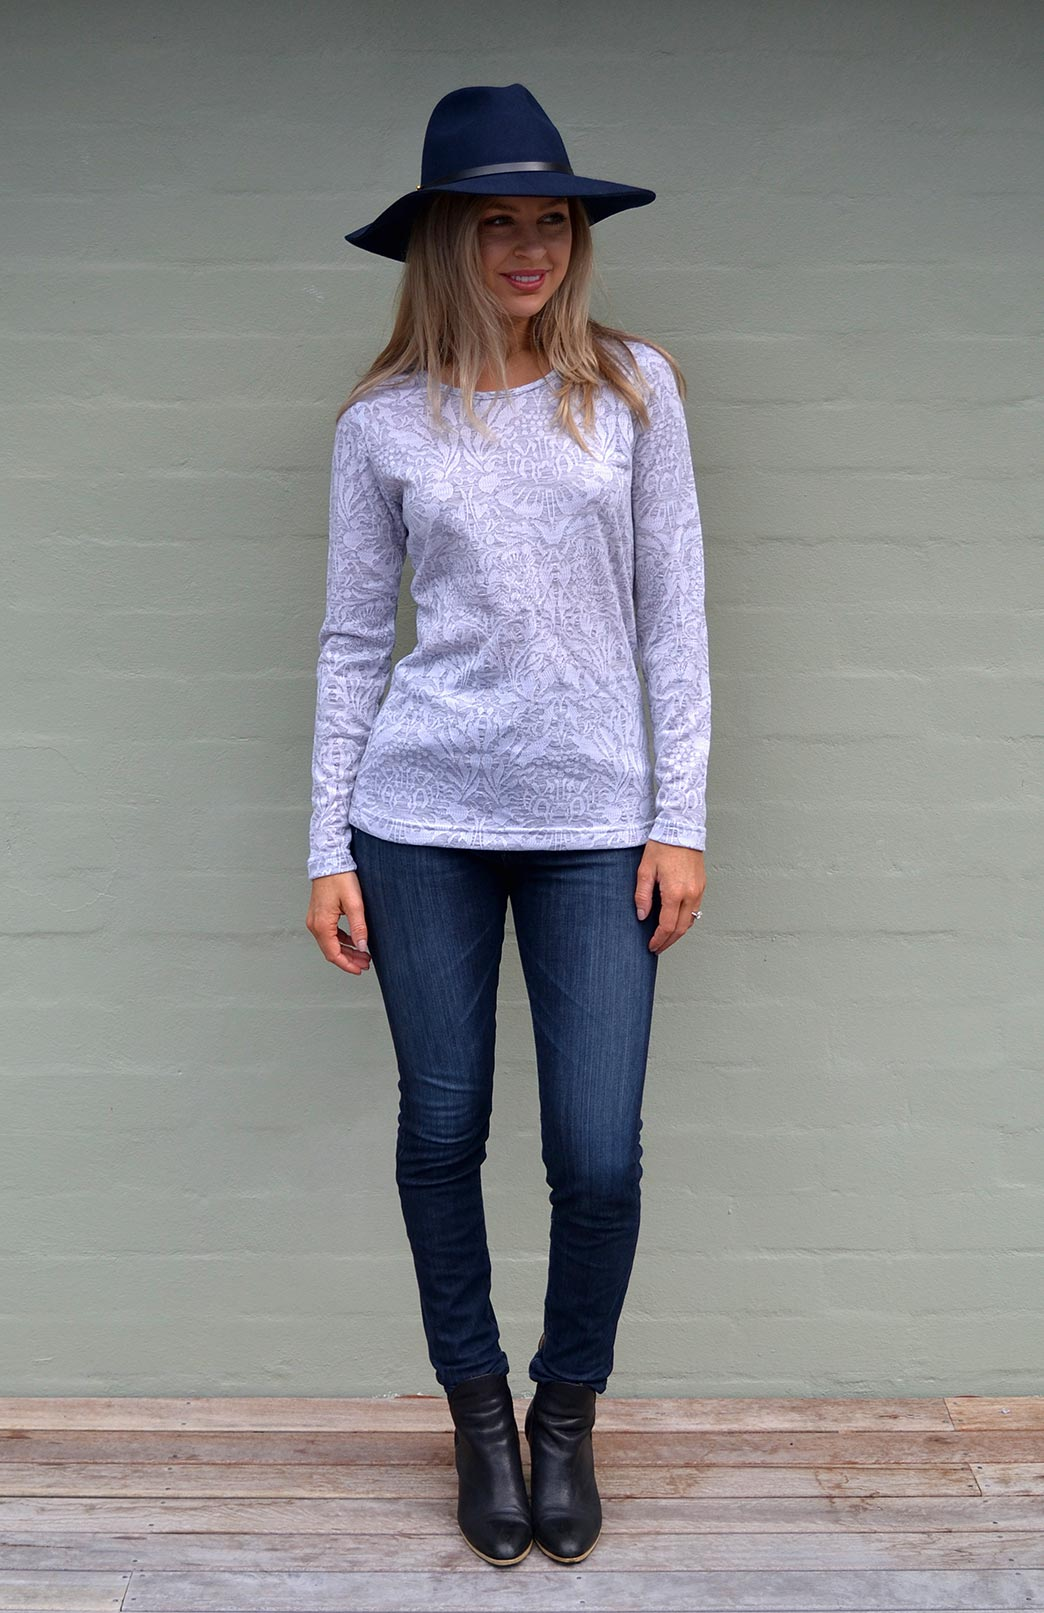 Round Neck Top - Patterned - Women's Soft Grey and White Floral Patterned Long Sleeved Merino Wool Thermal Fashion Top - Smitten Merino Tasmania Australia